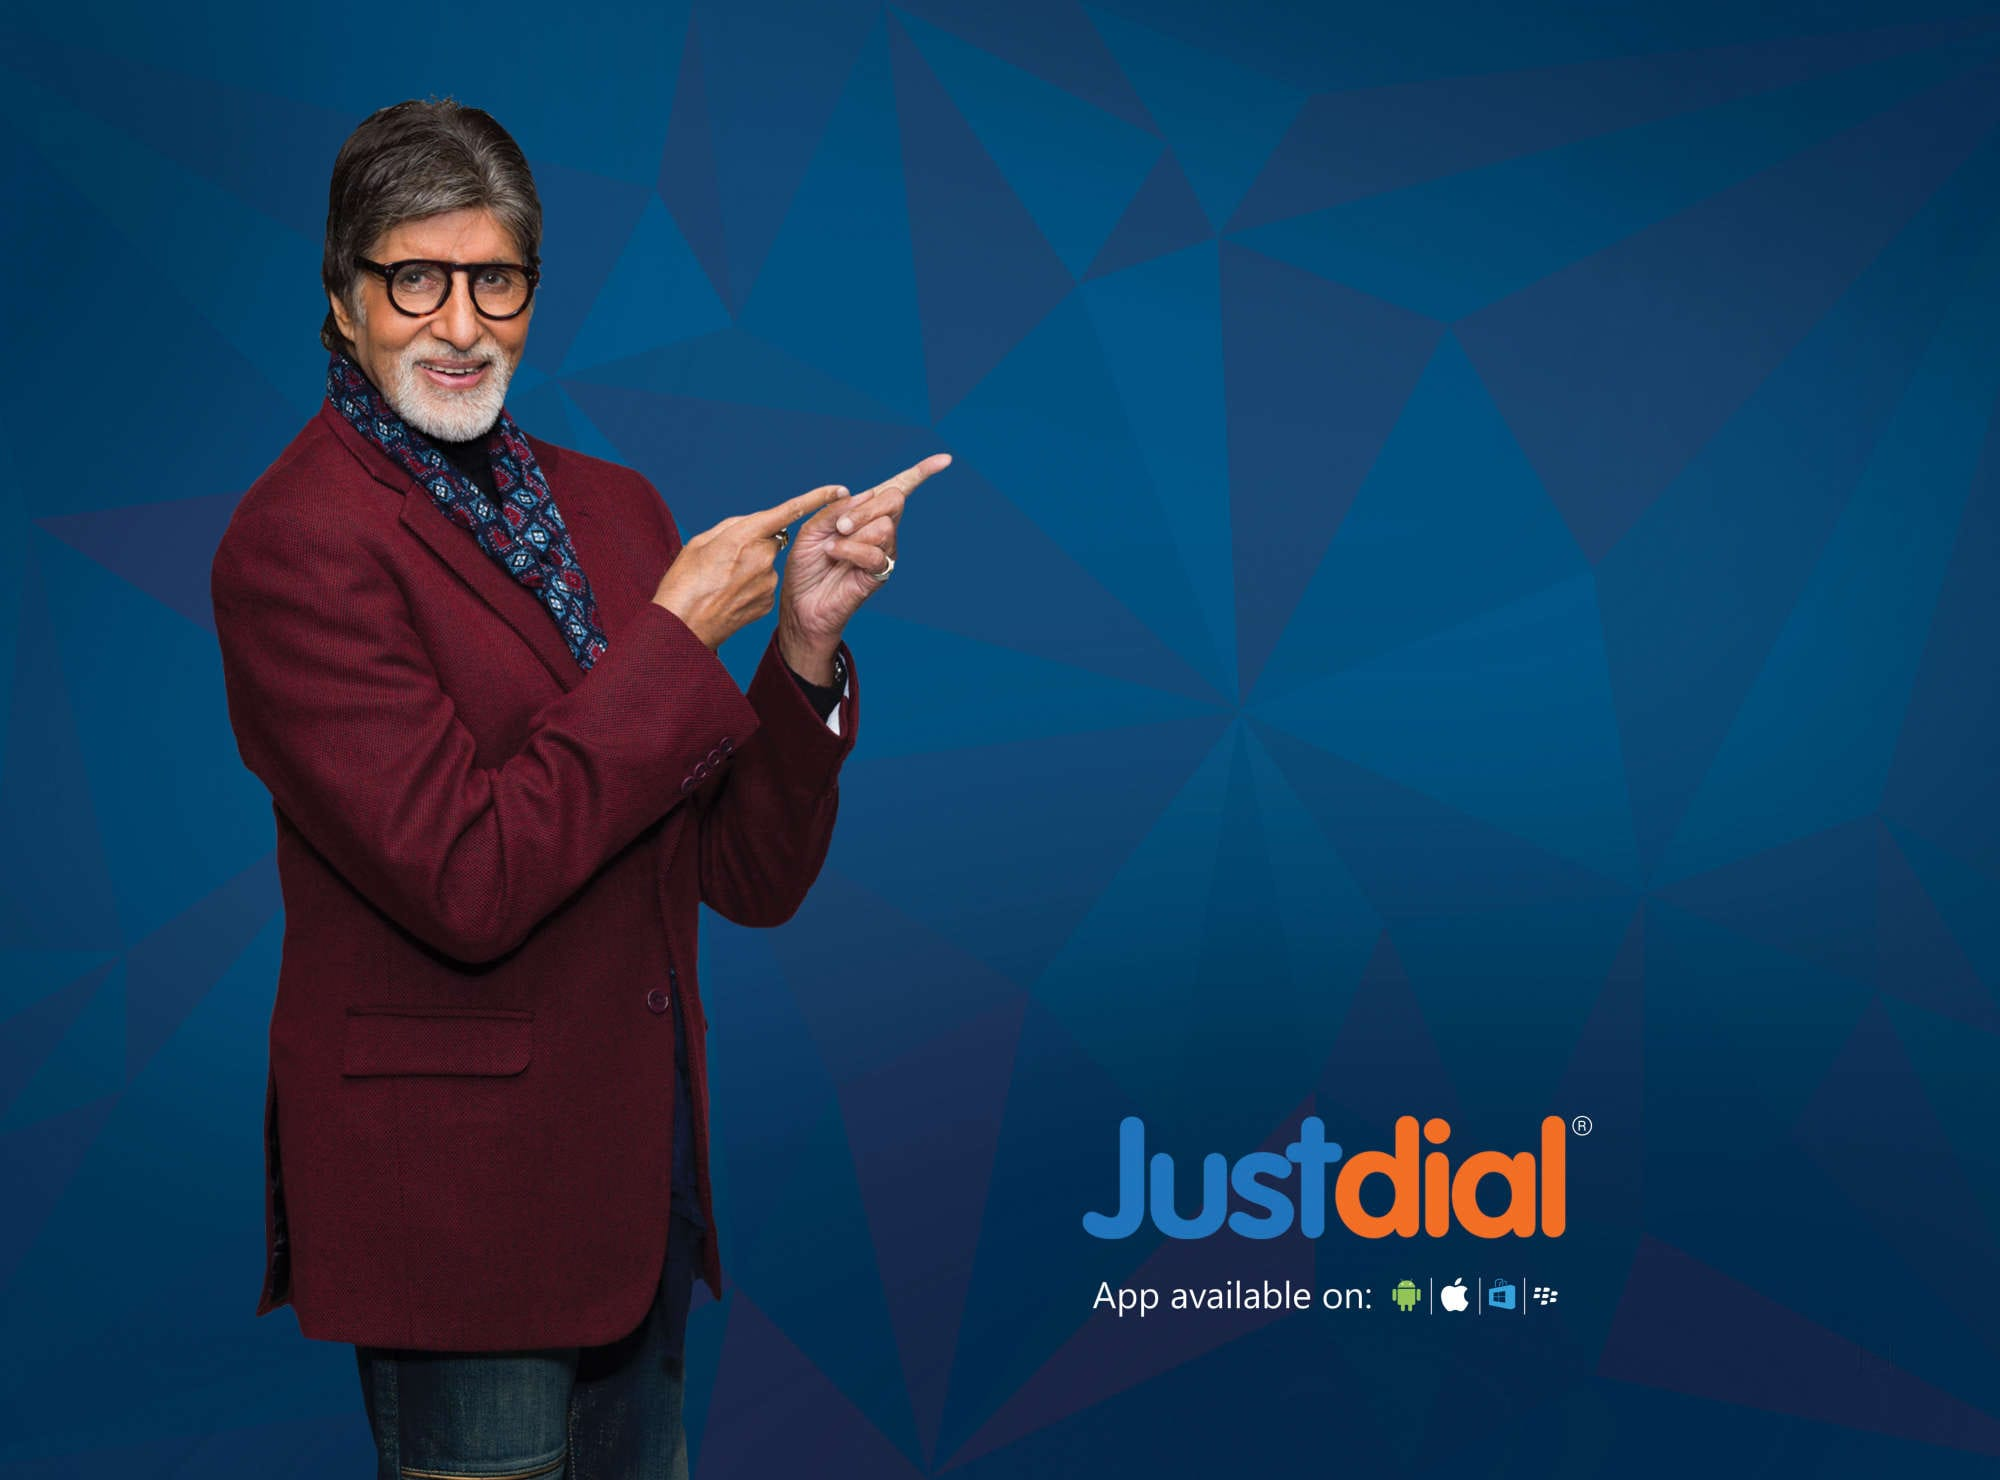 Justdial Contact Number Chennai